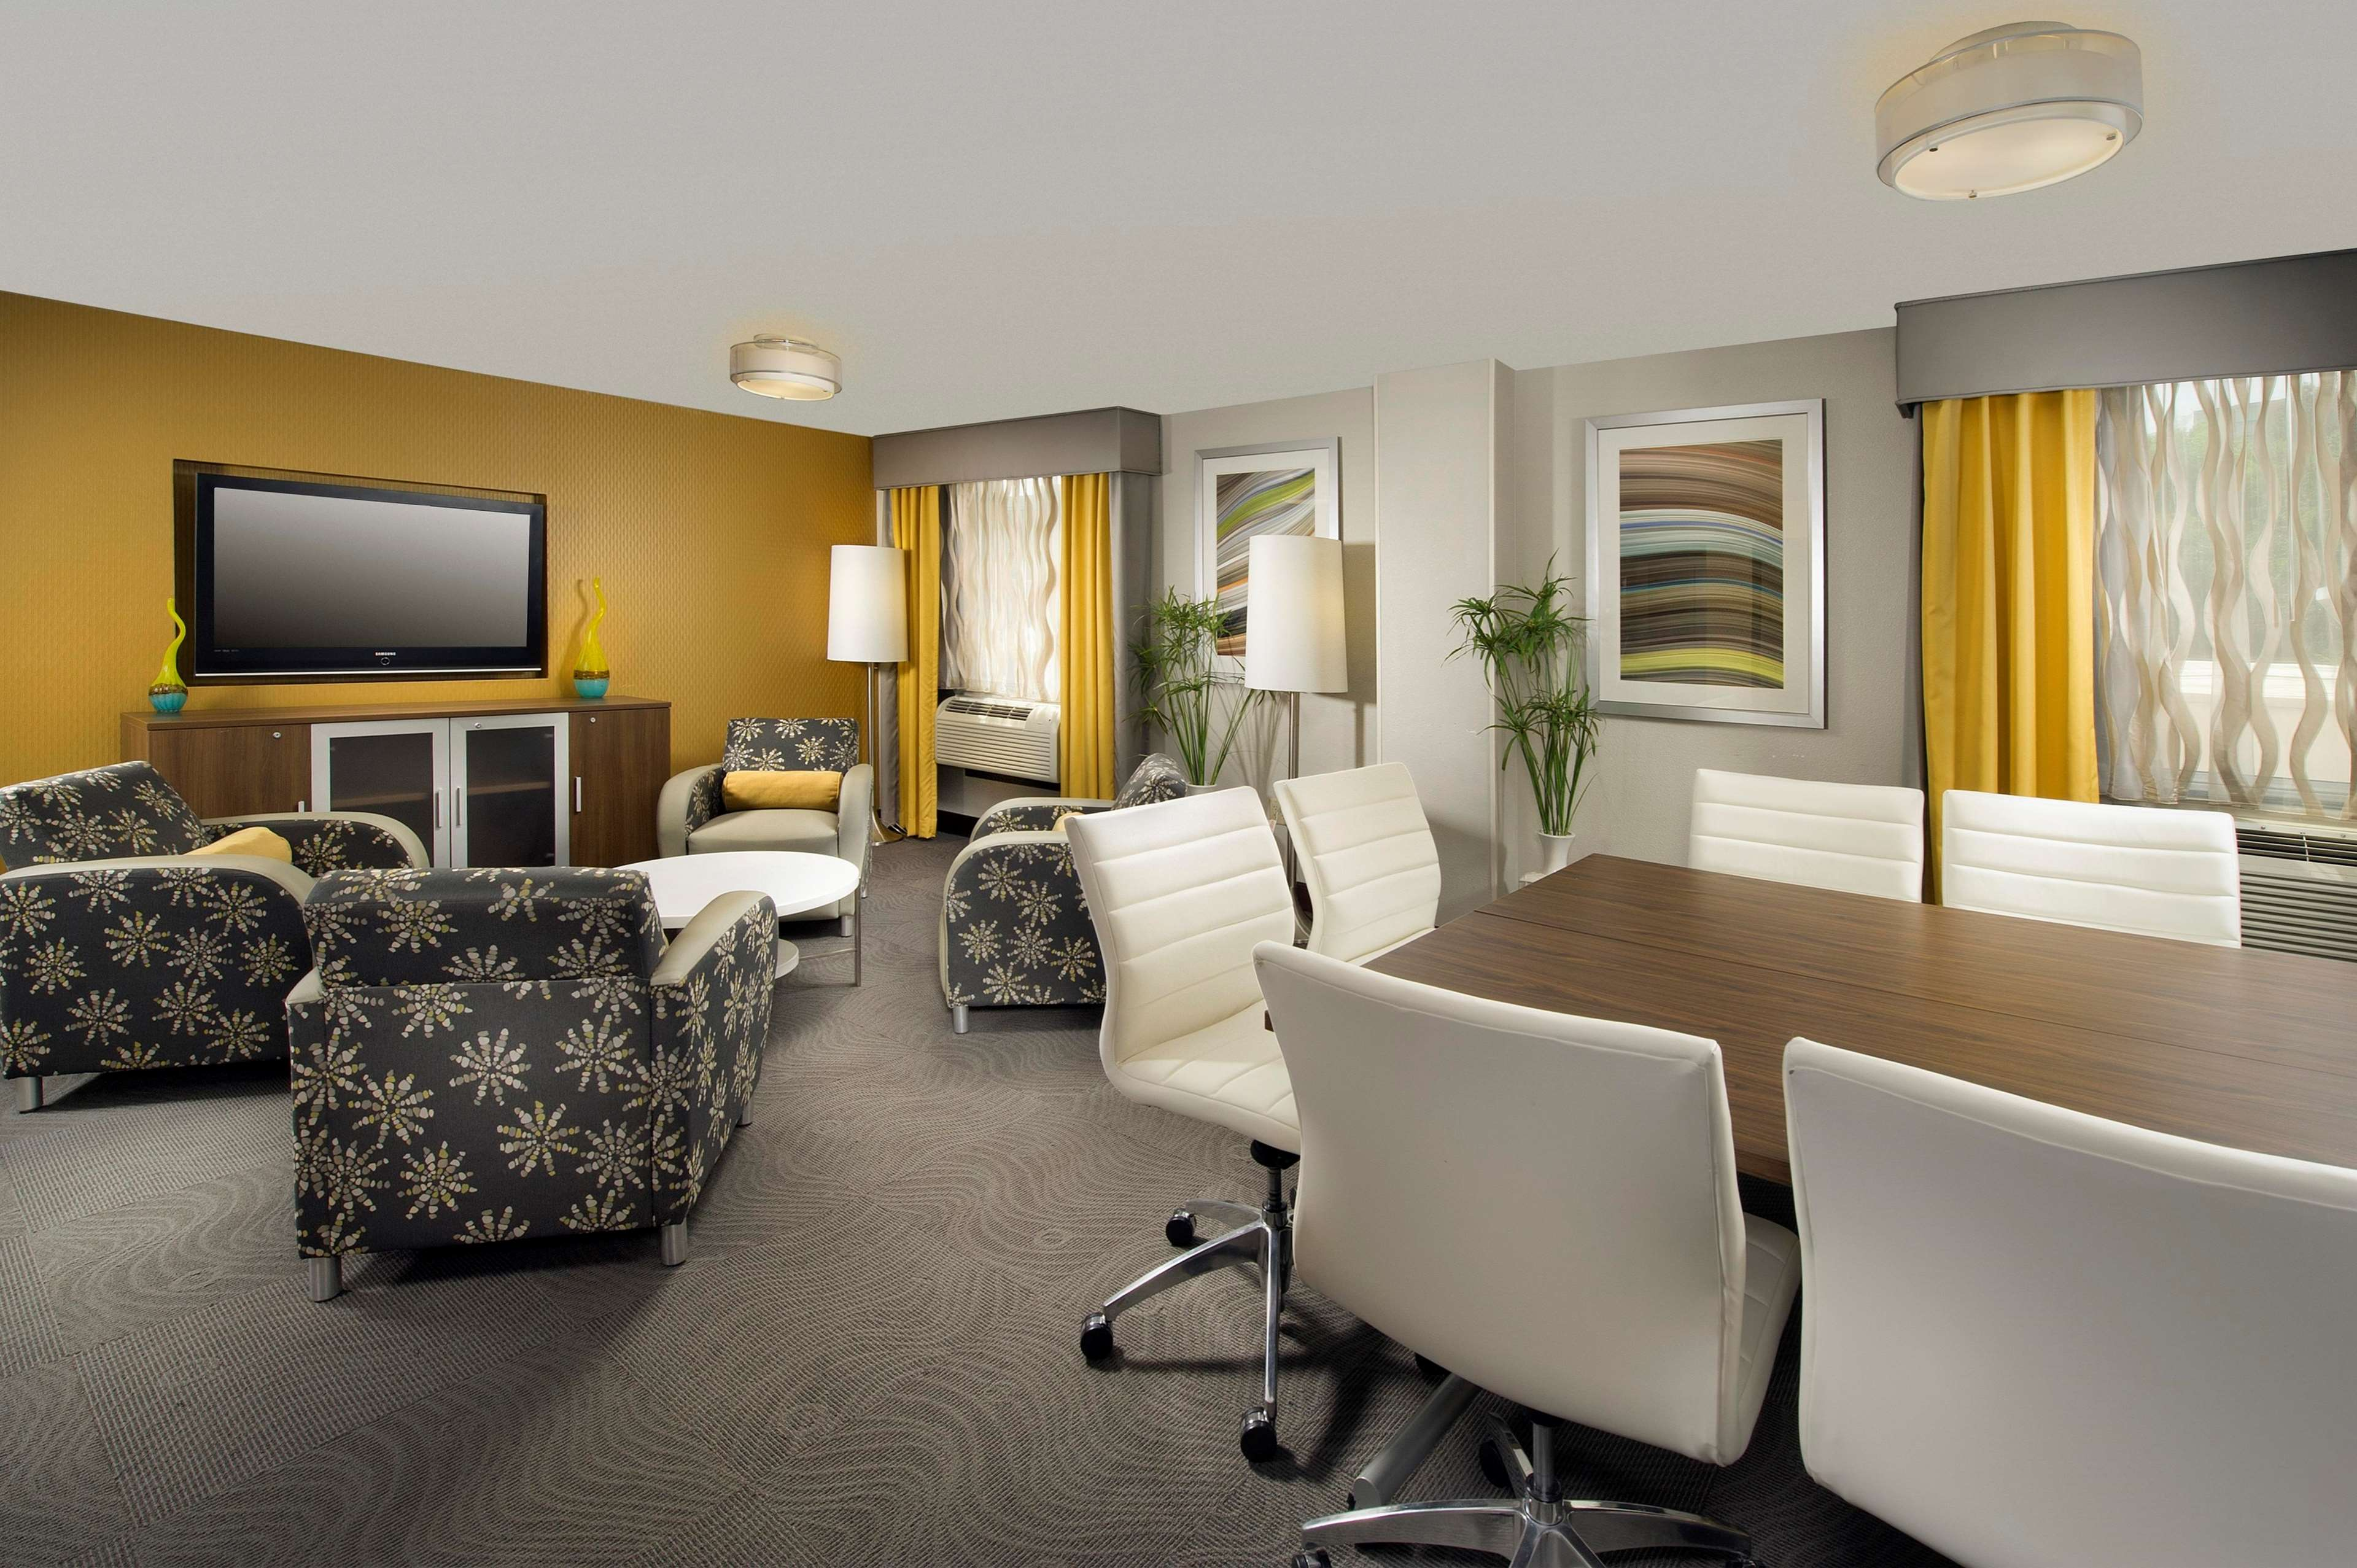 Doubletree By Hilton Hotel Chattanooga Tn